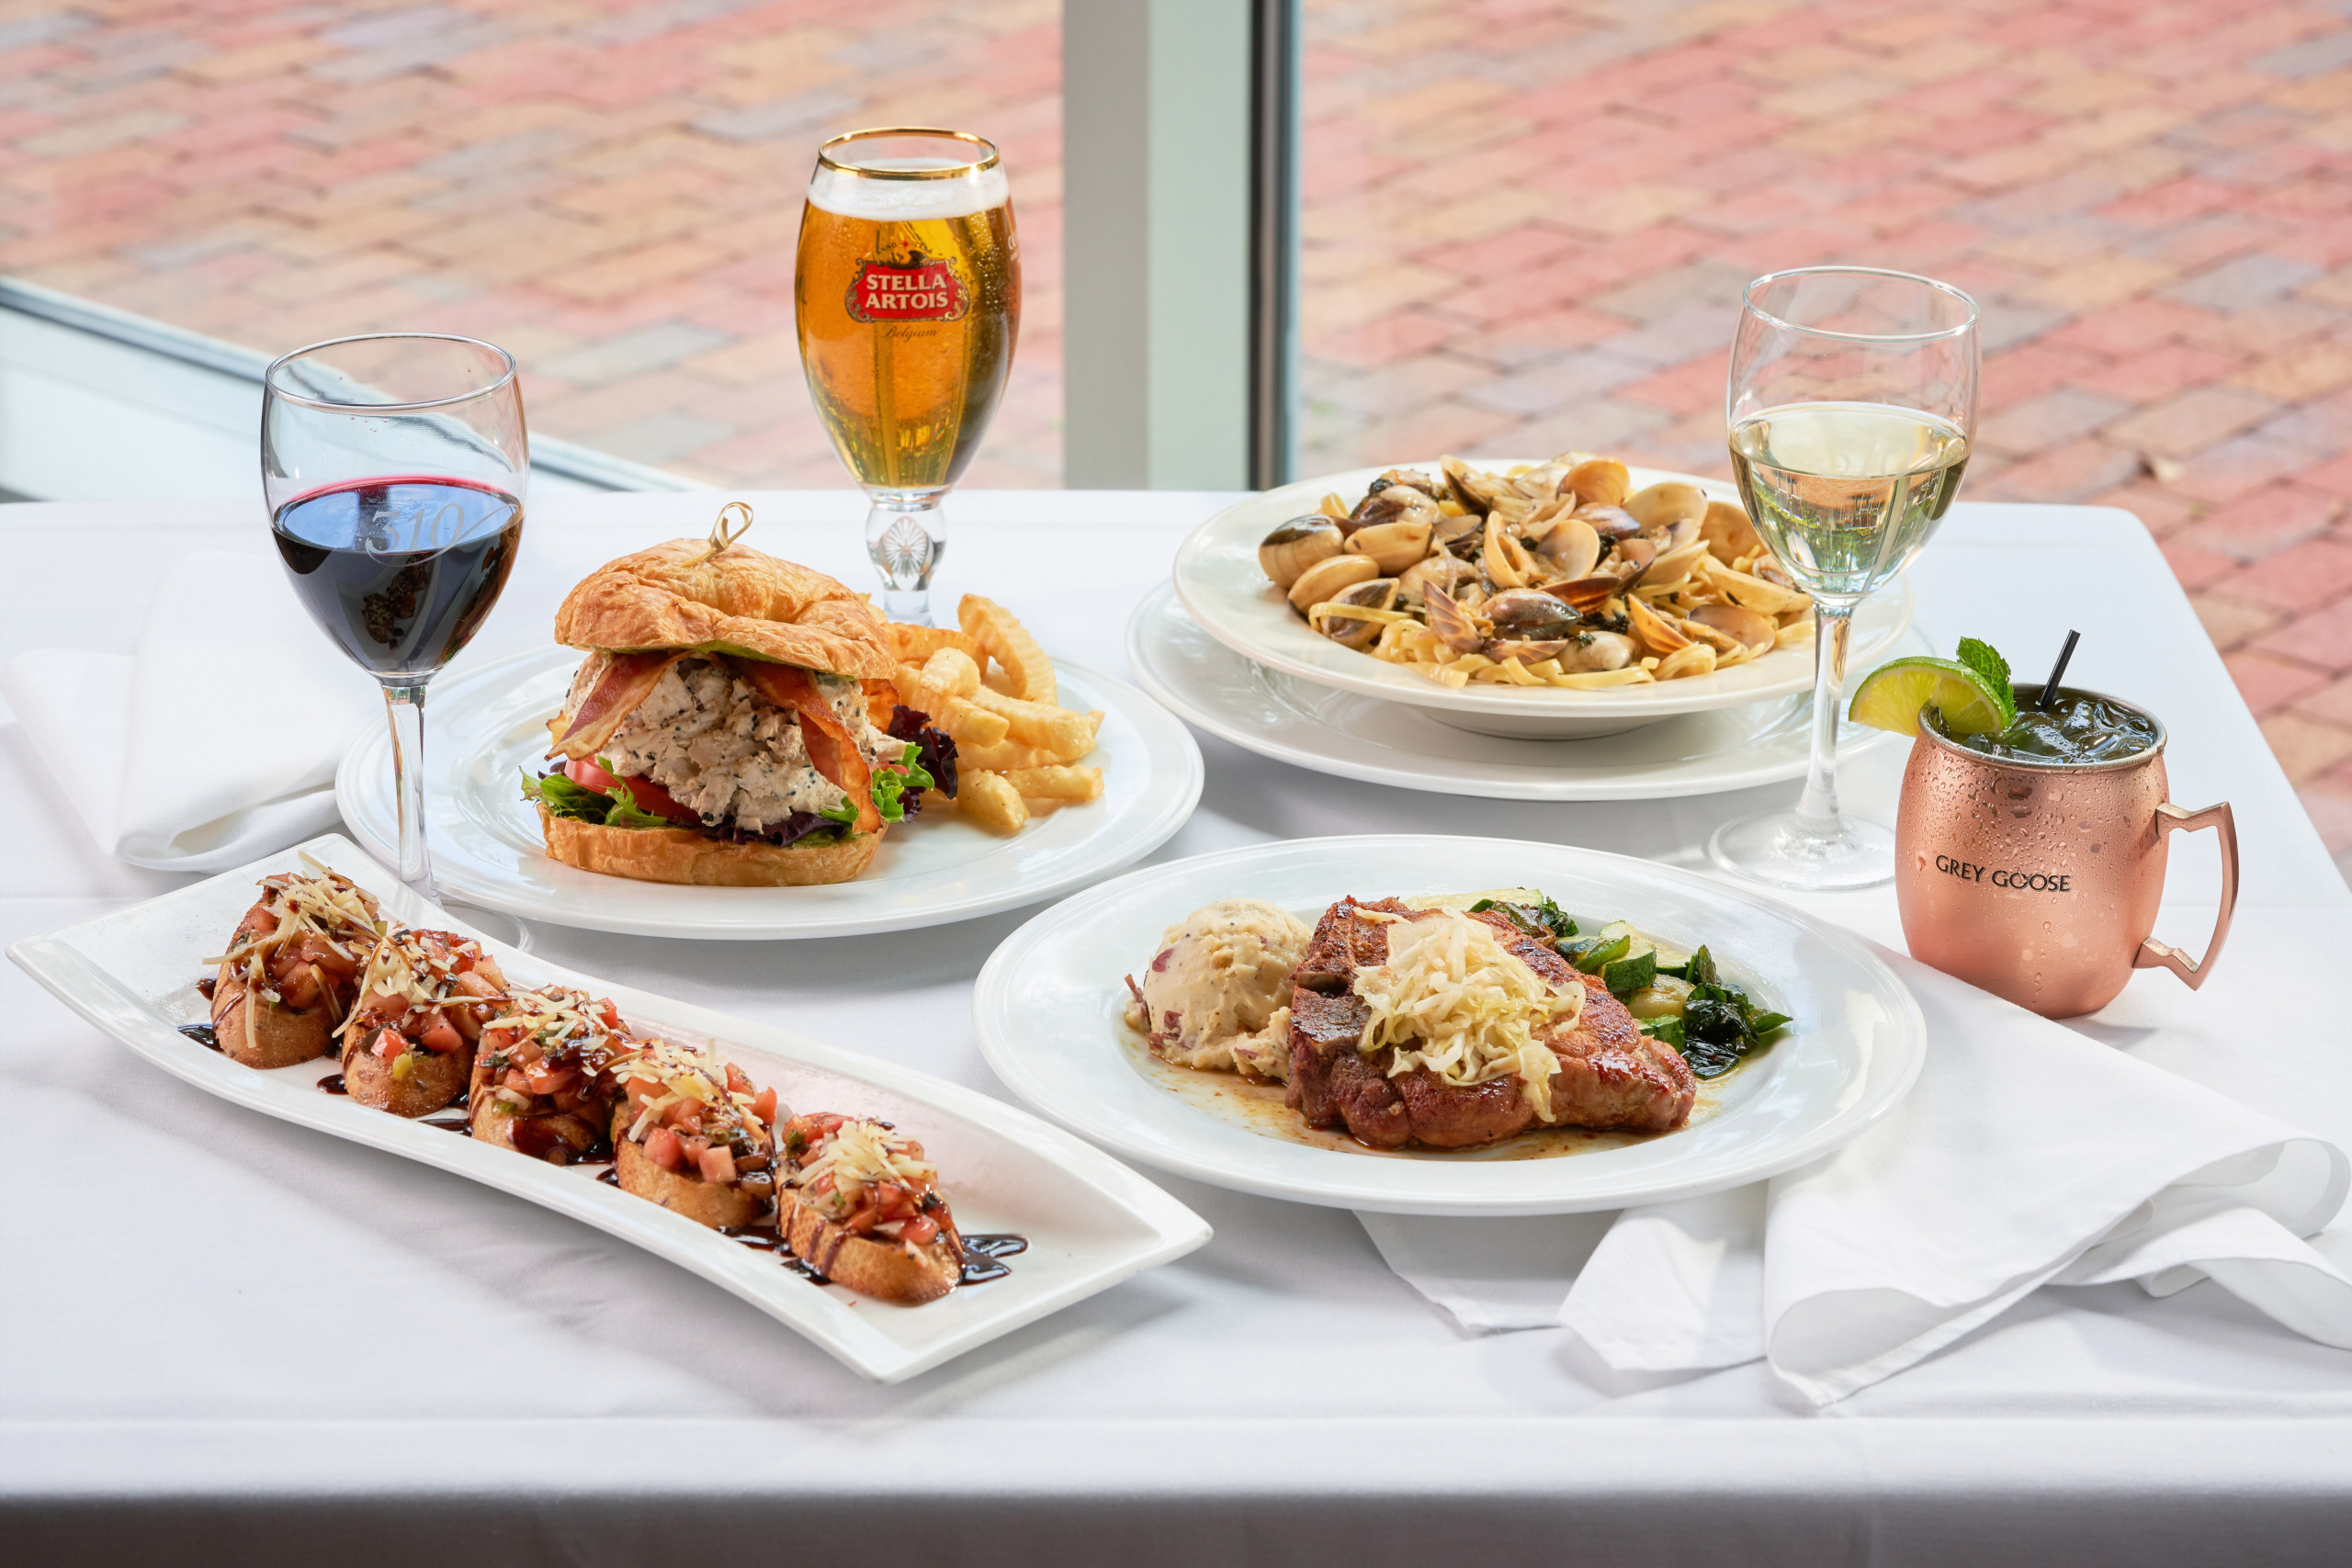 Visit Orlando's Magical Dining extends two more weeks, ends October 17